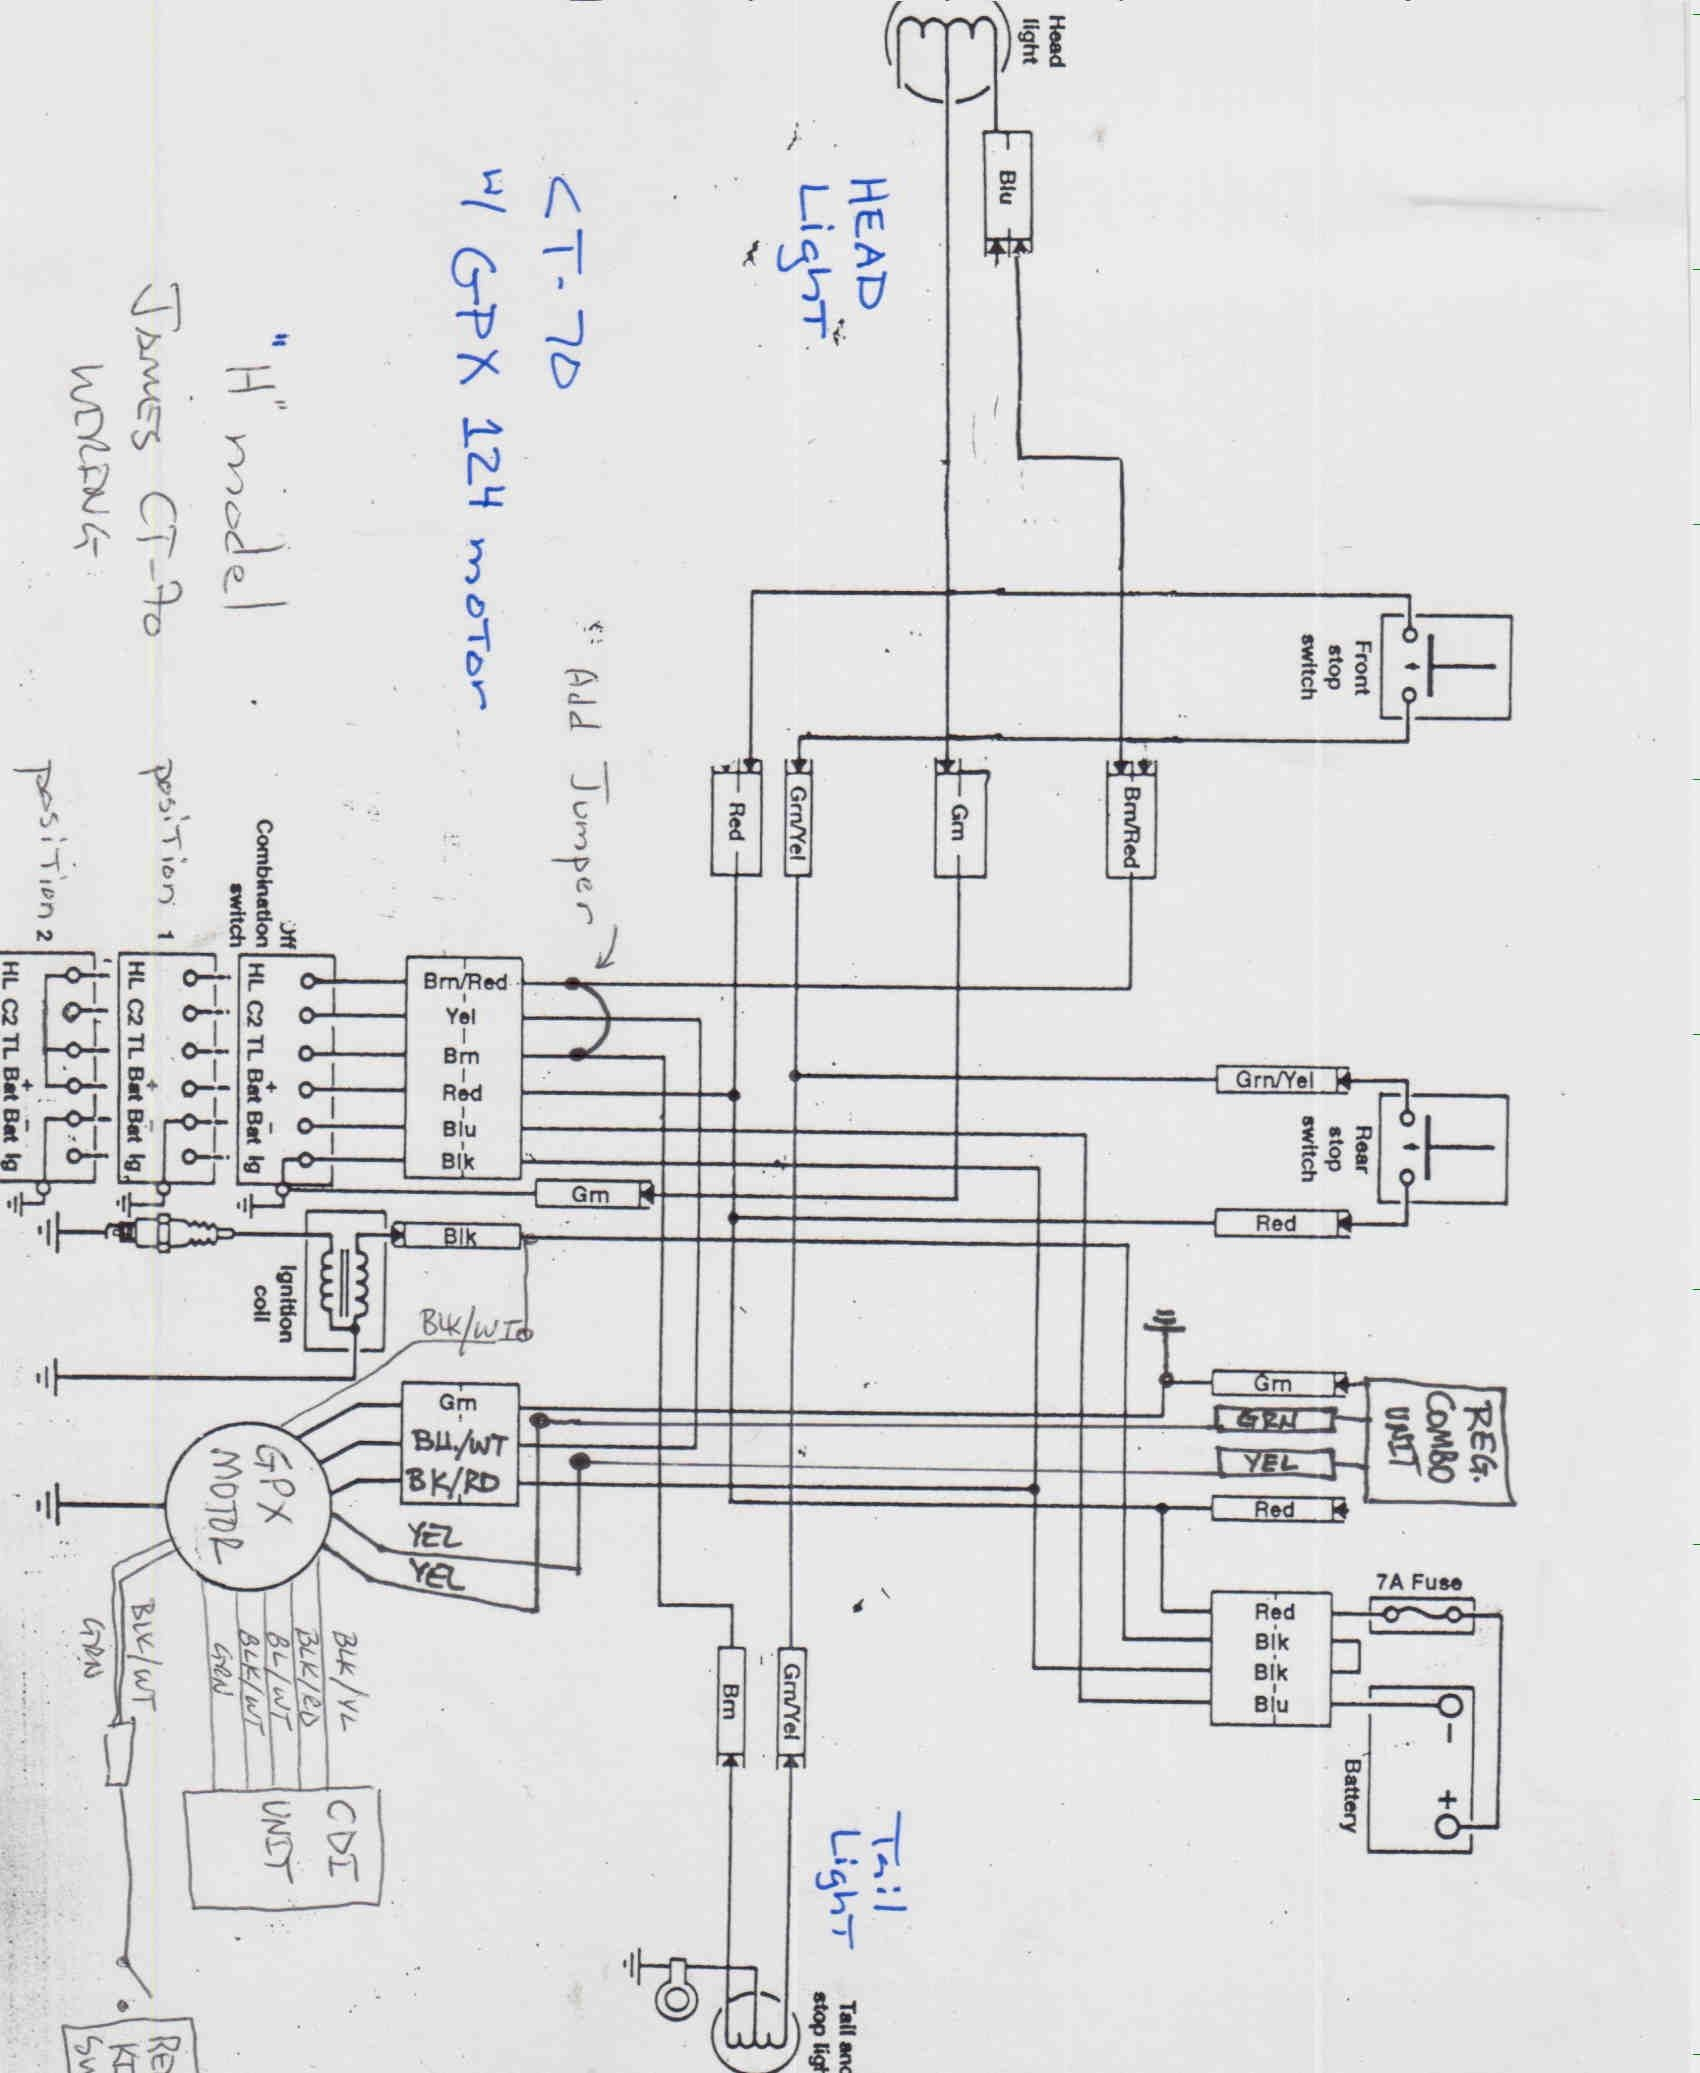 Wiring Diagram for A Chinese 110 atv 110 Schematic Wiring Diagram Basic Electrical Schematic Of Wiring Diagram for A Chinese 110 atv